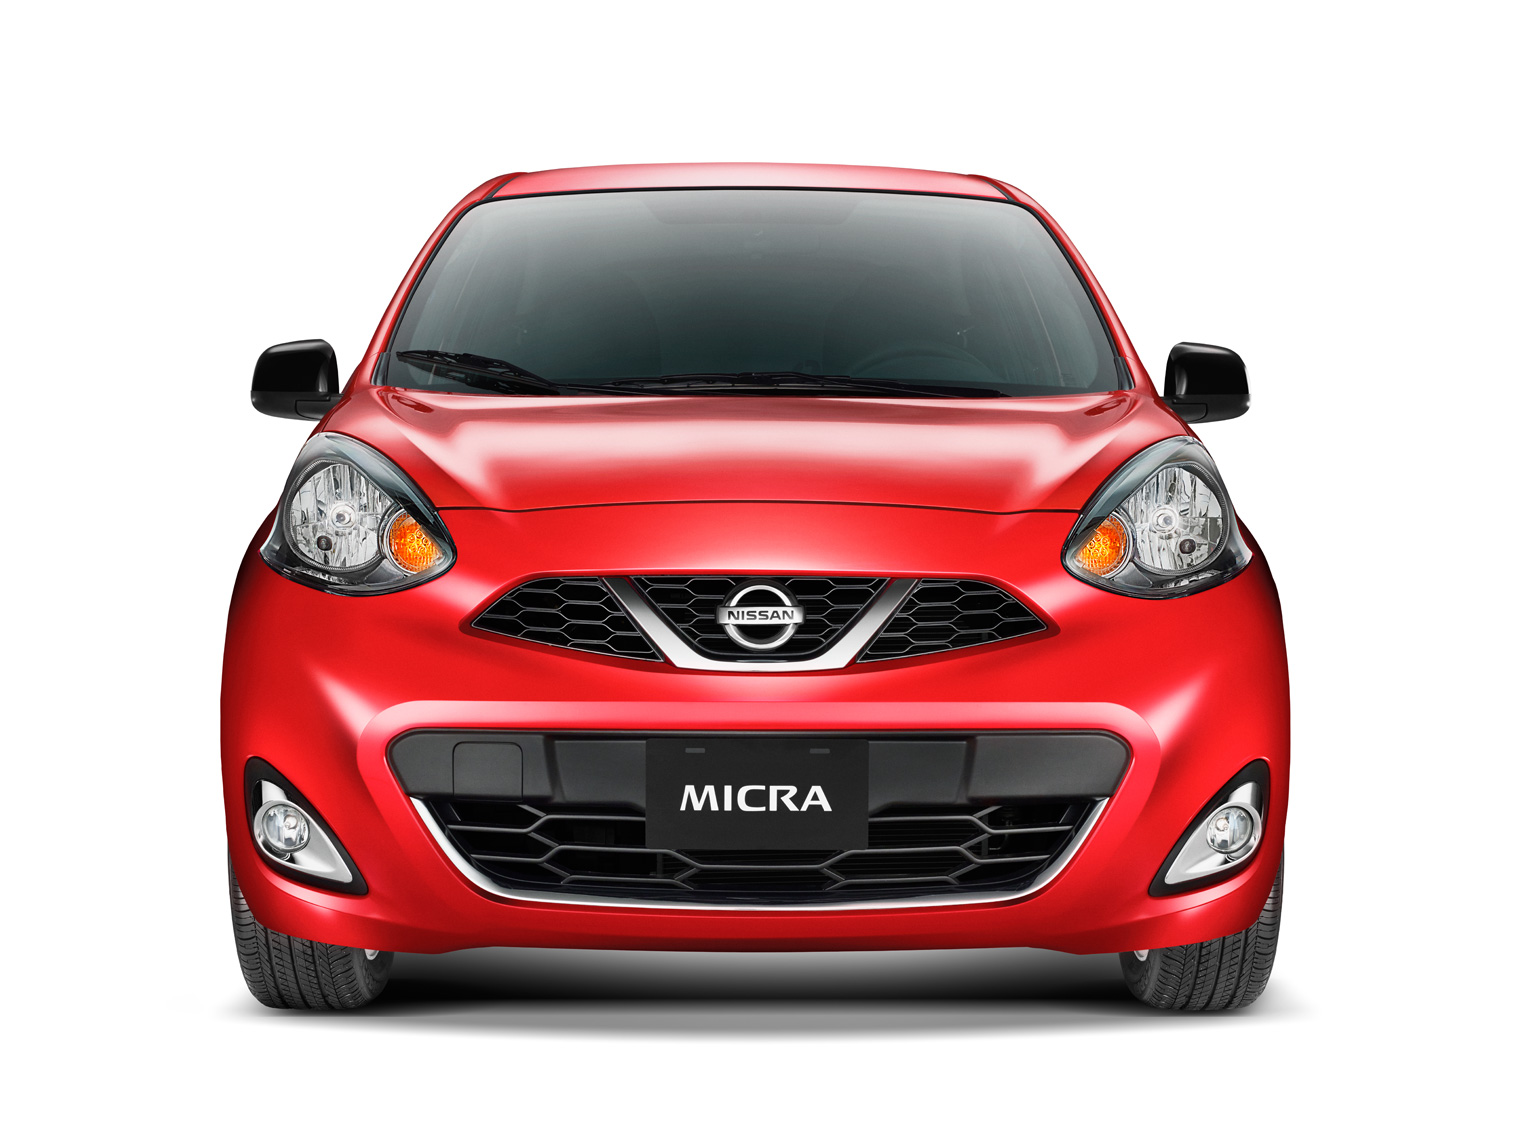 Nissan-Micra_Front-Head-On_105_011_RGB